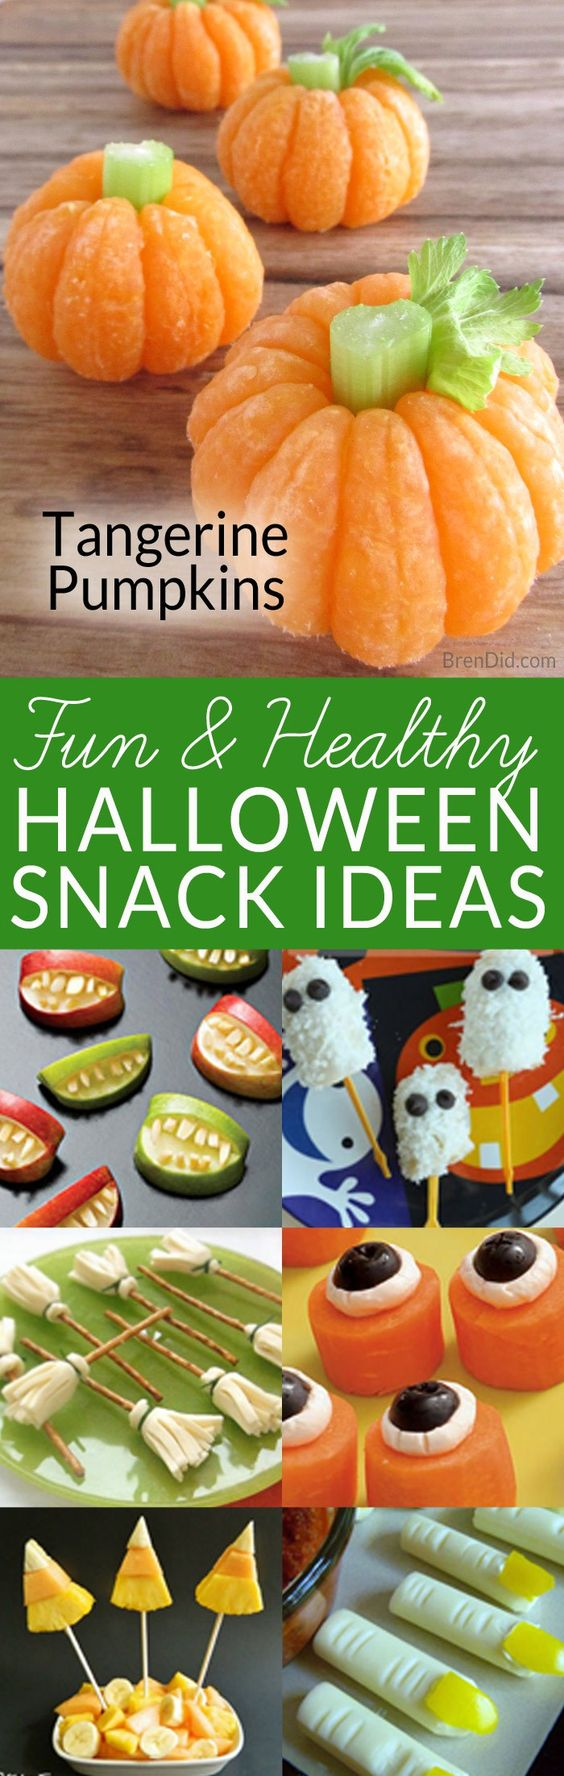 Halloween sugar overload? These healthy Halloween treats are fun for kids. Make easy tangerine pumpkins or one of the 8 other healthy…